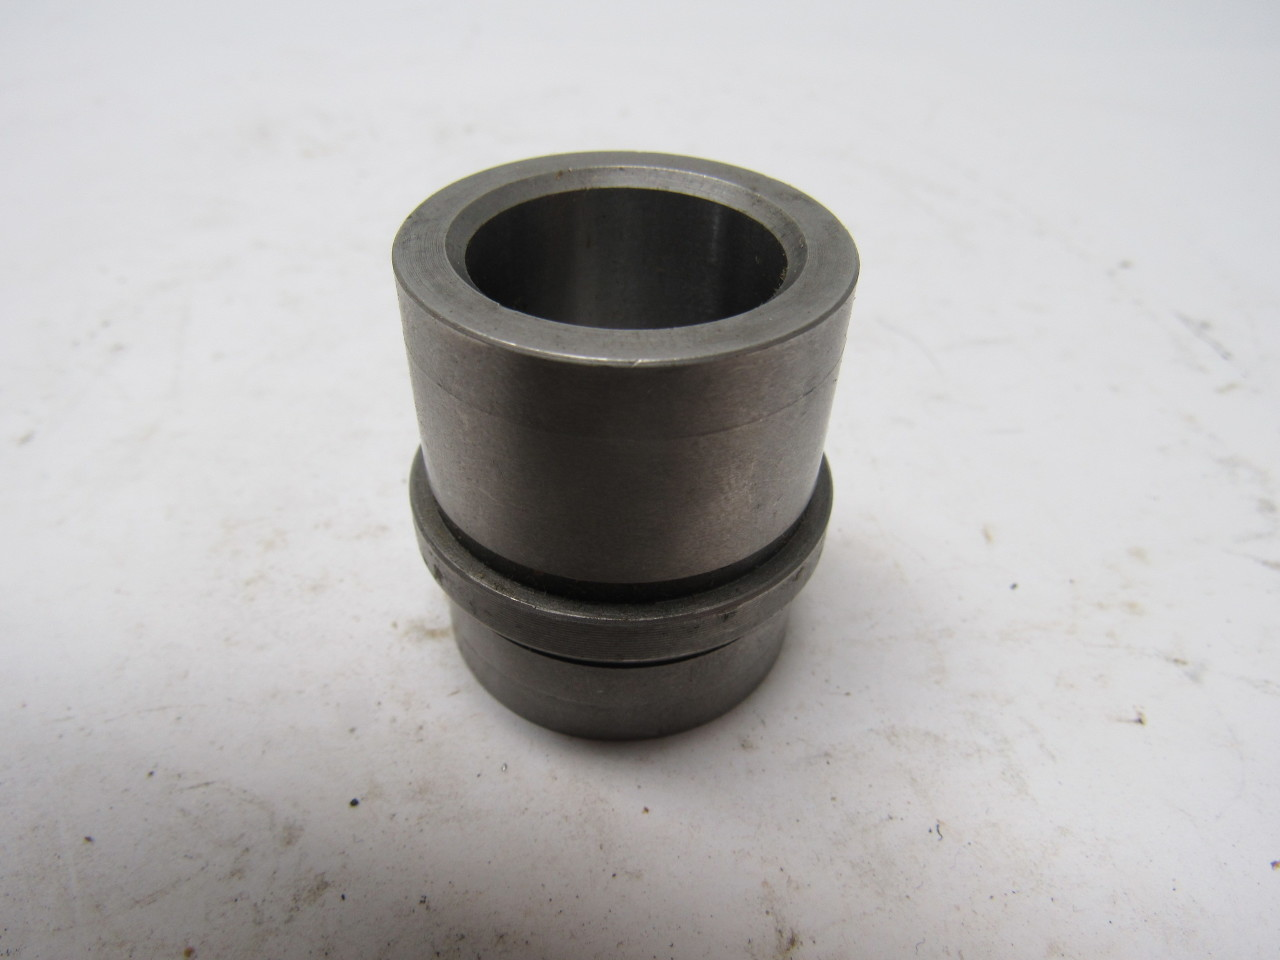 Steel die press mold demountable shoulder bushing quot